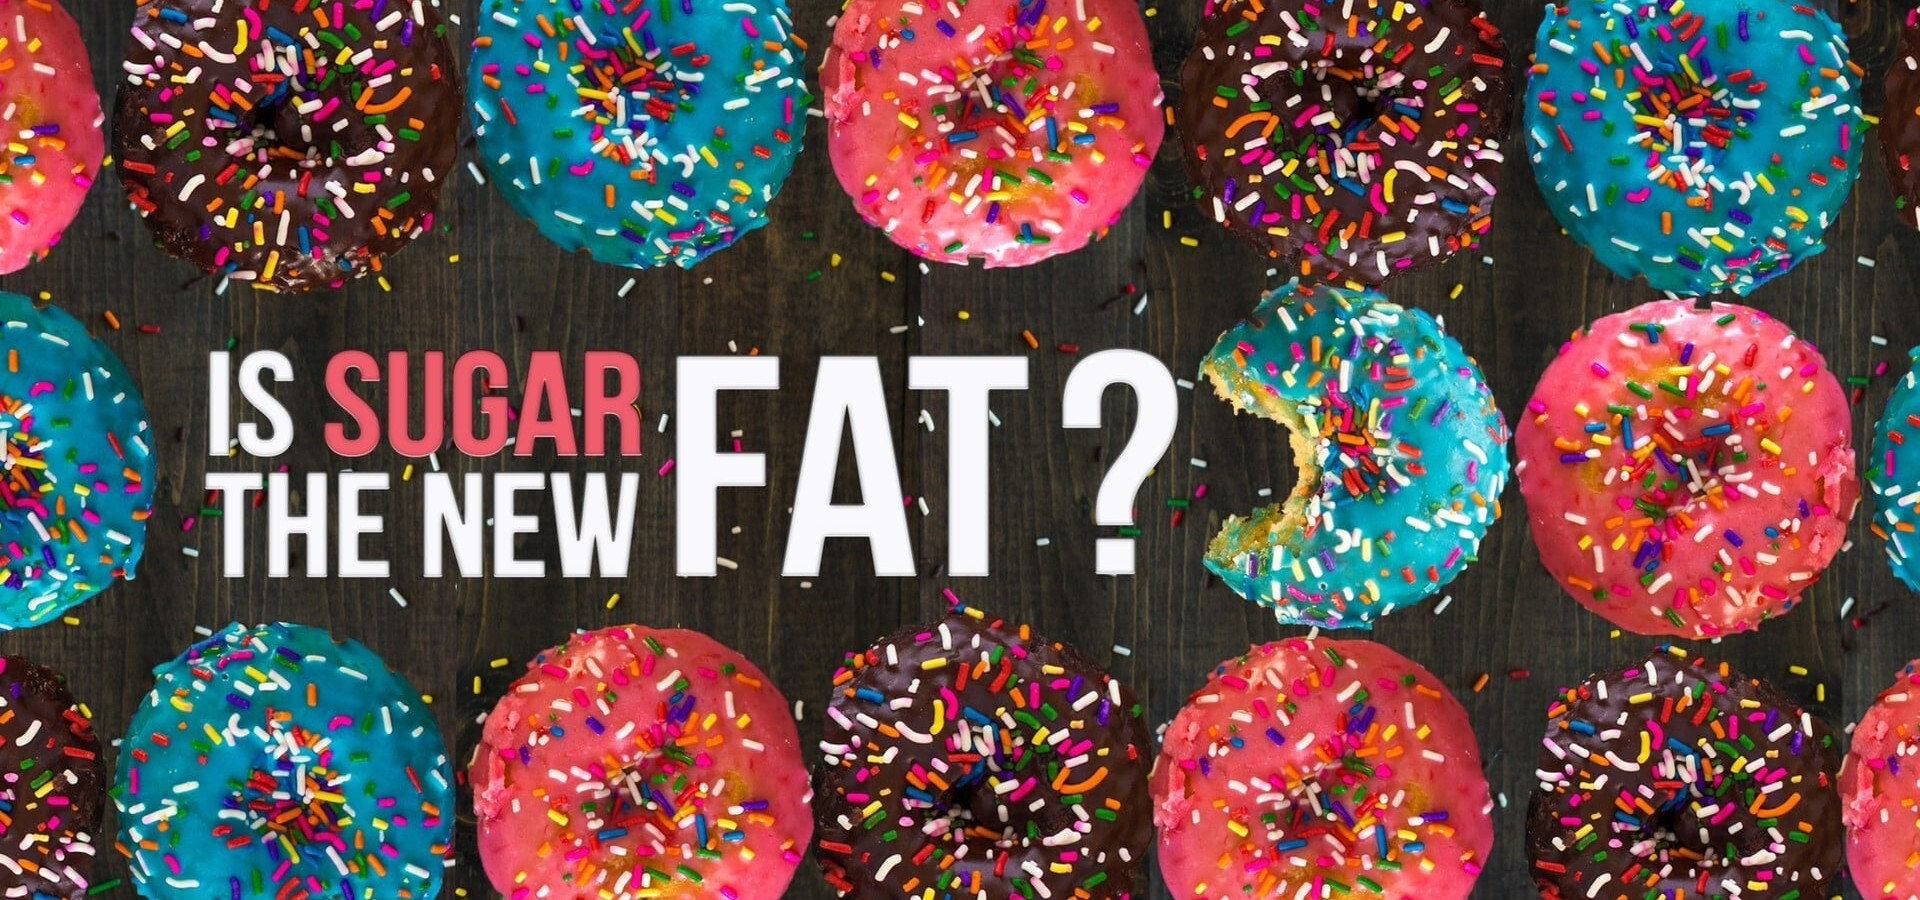 Is Sugar the New Fat?